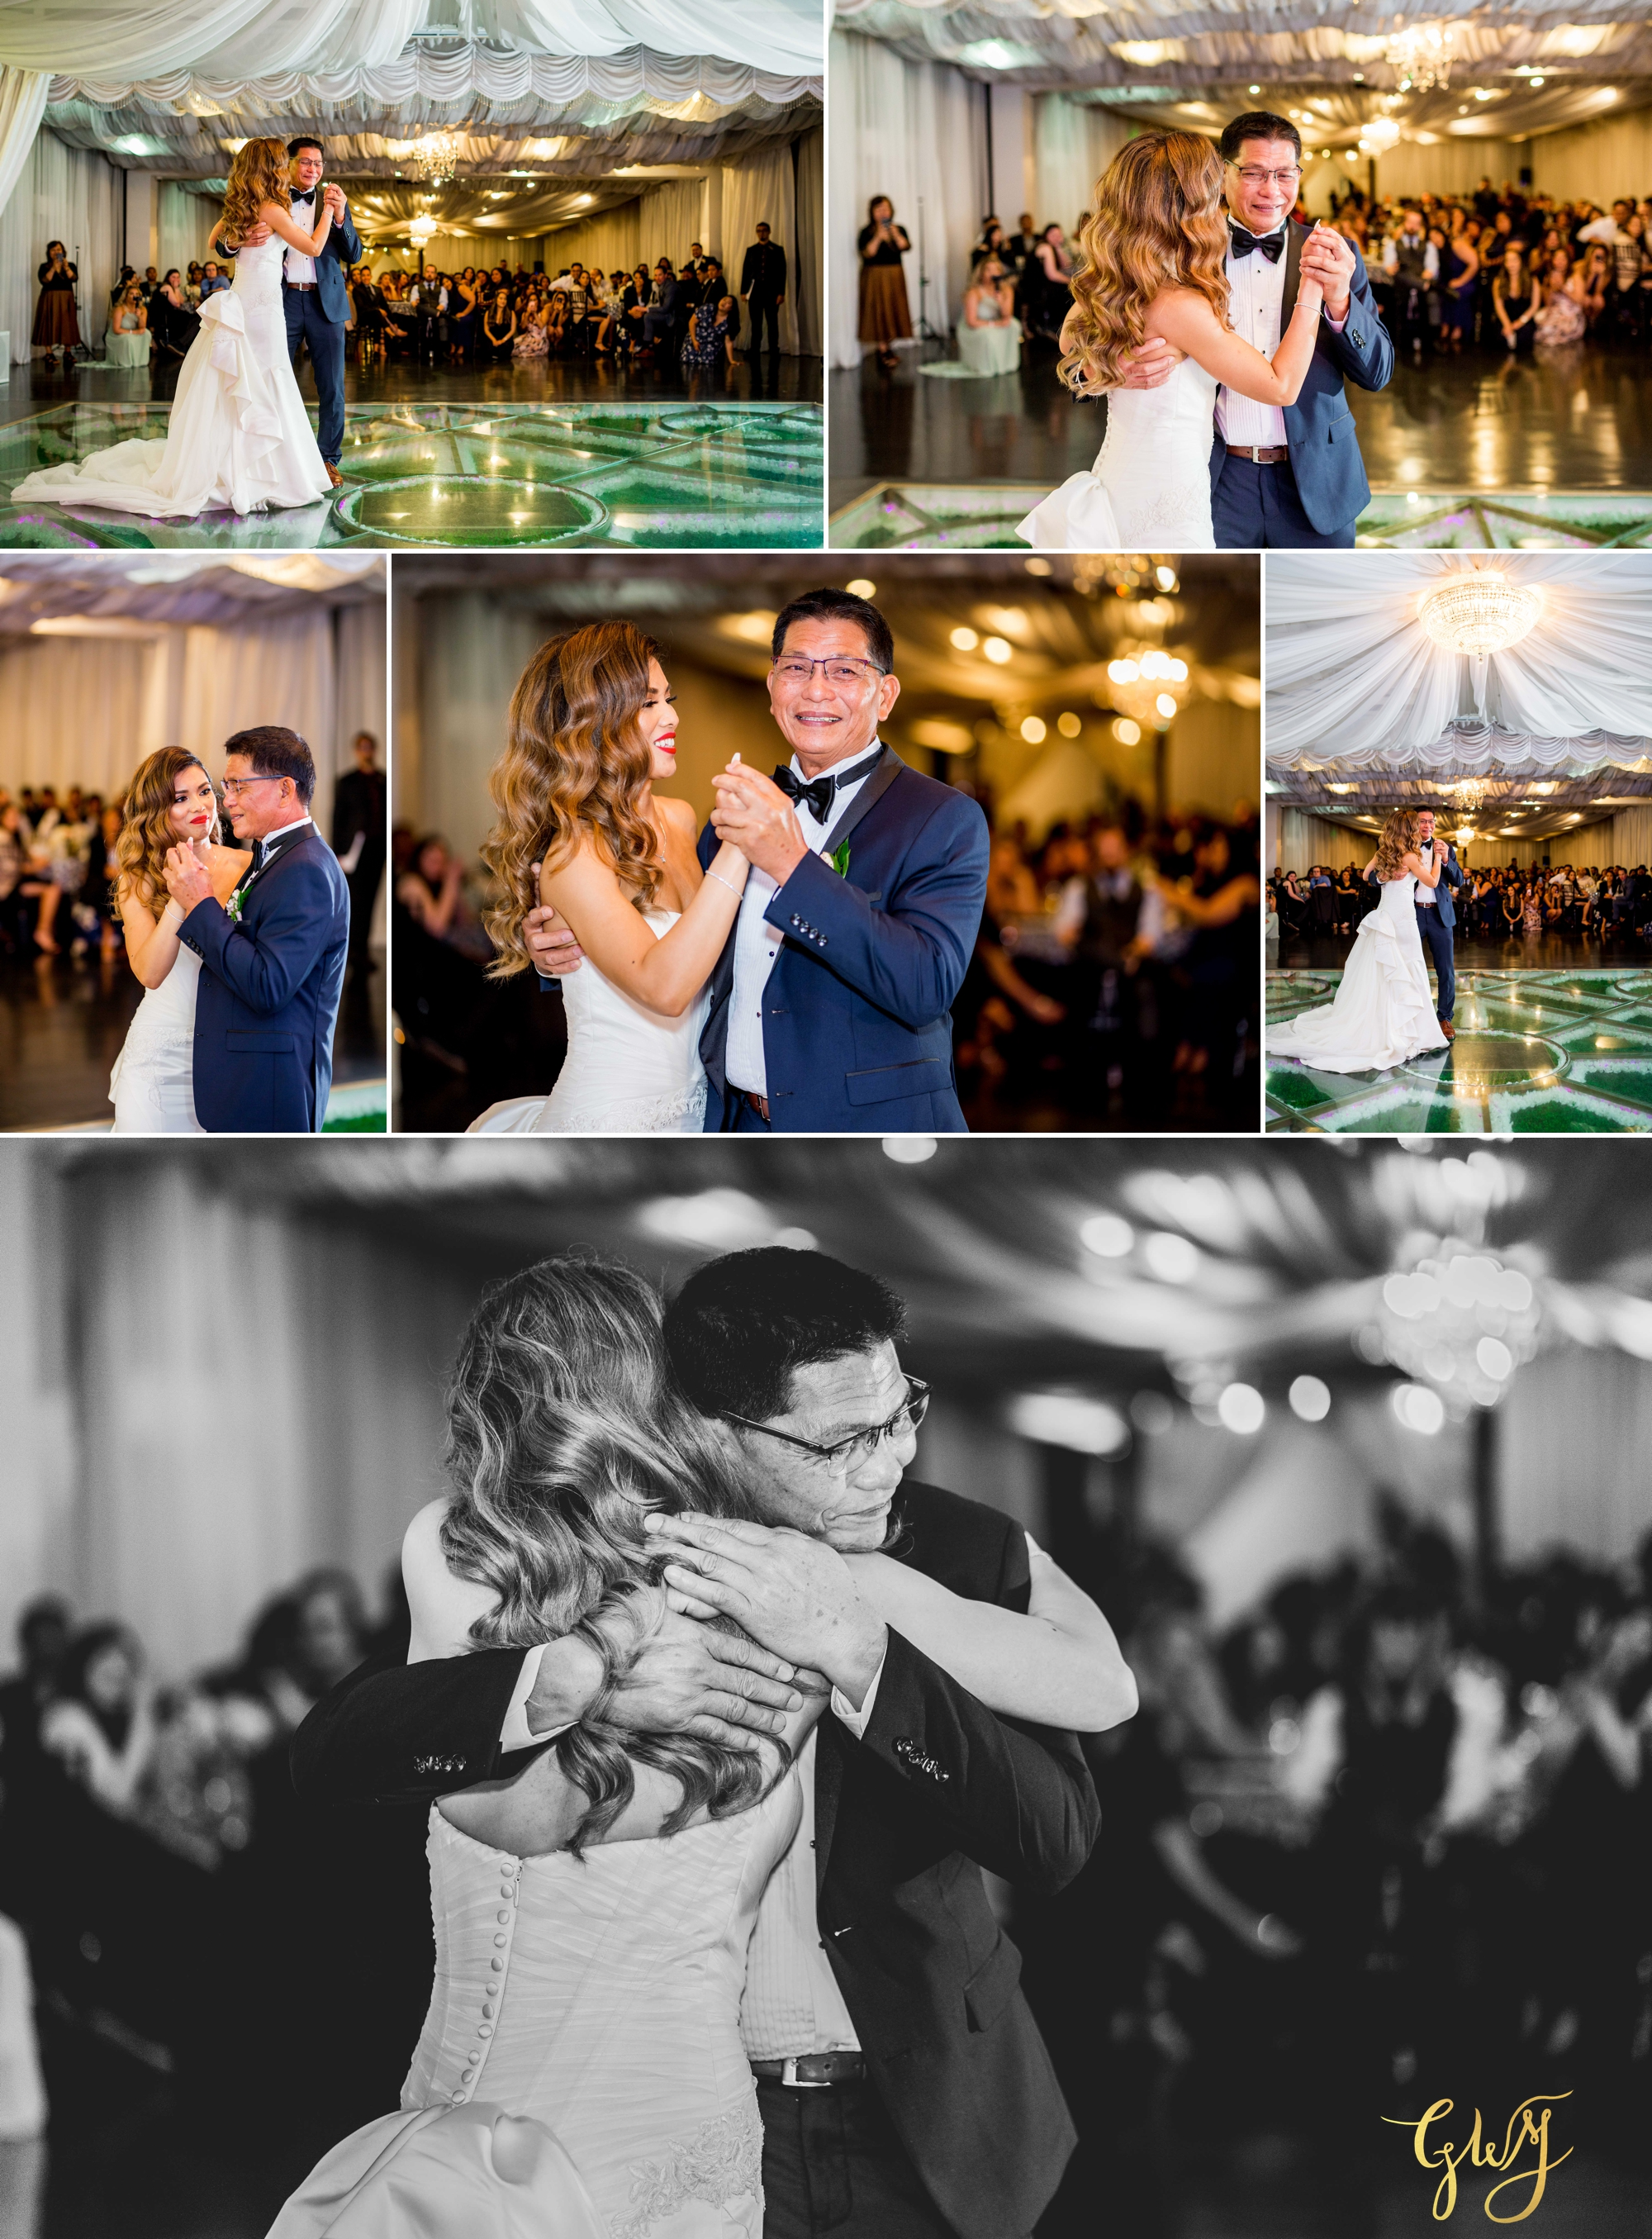 Andy + Caselyn's White House Event Center Orange County Spring Wedding by Glass Woods Media 46.jpg